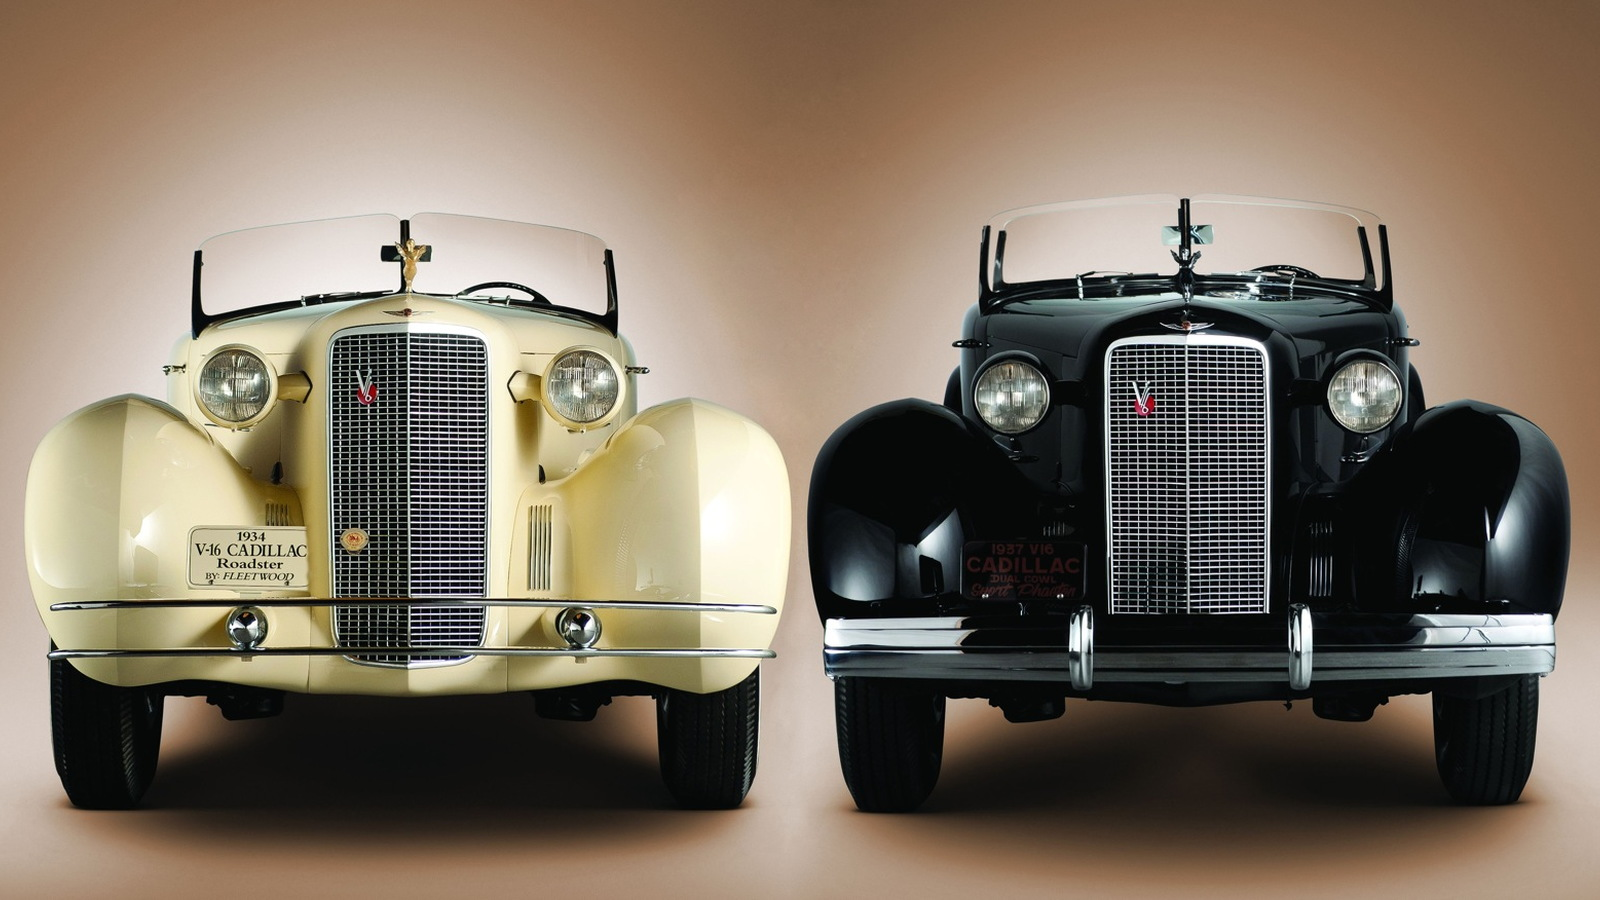 Roadster 5802 and Phaeton 5859 - photo courtesy RM Auctions/Darin Schnabel